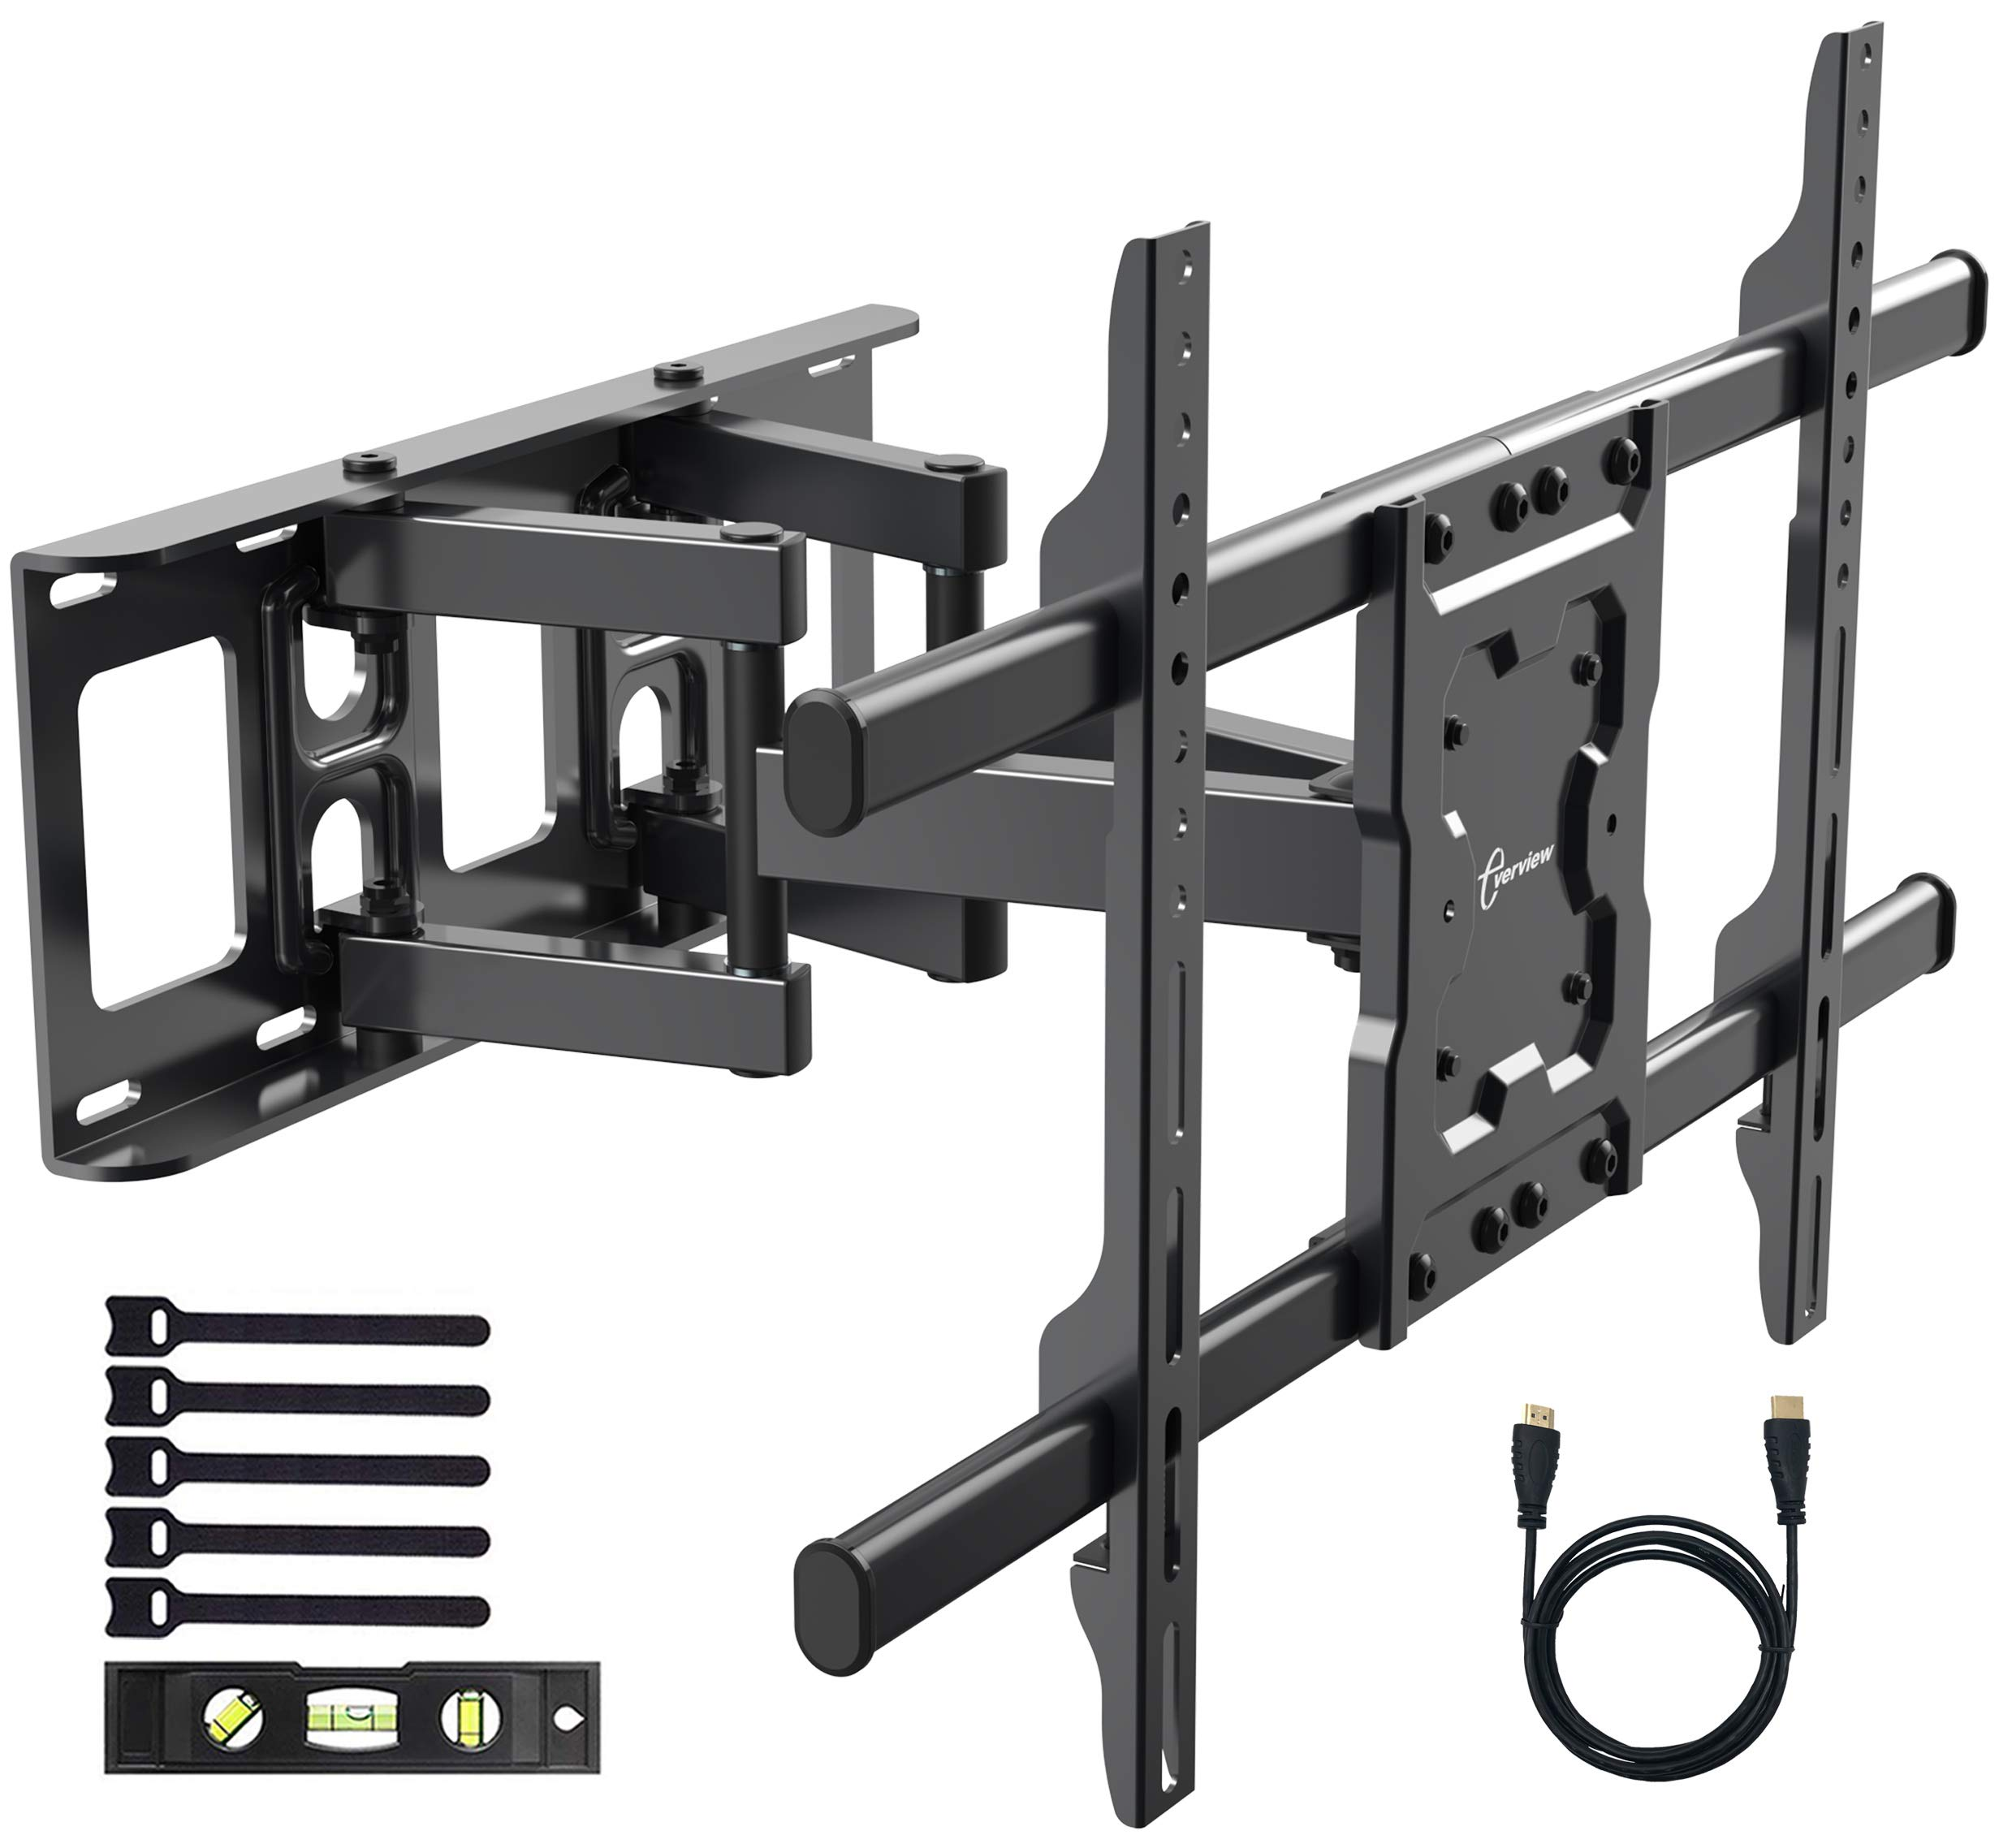 EVERVIEW TV Wall Mount Bracket fits to most 37-70 inch LED,LCD,OLED Flat Panel TVs, Tilt Full motion Swivel Dual Articulating Arms, bring perfect viewing angle, Max VESA 600X400, 132lbs Loading by EVERVIEW